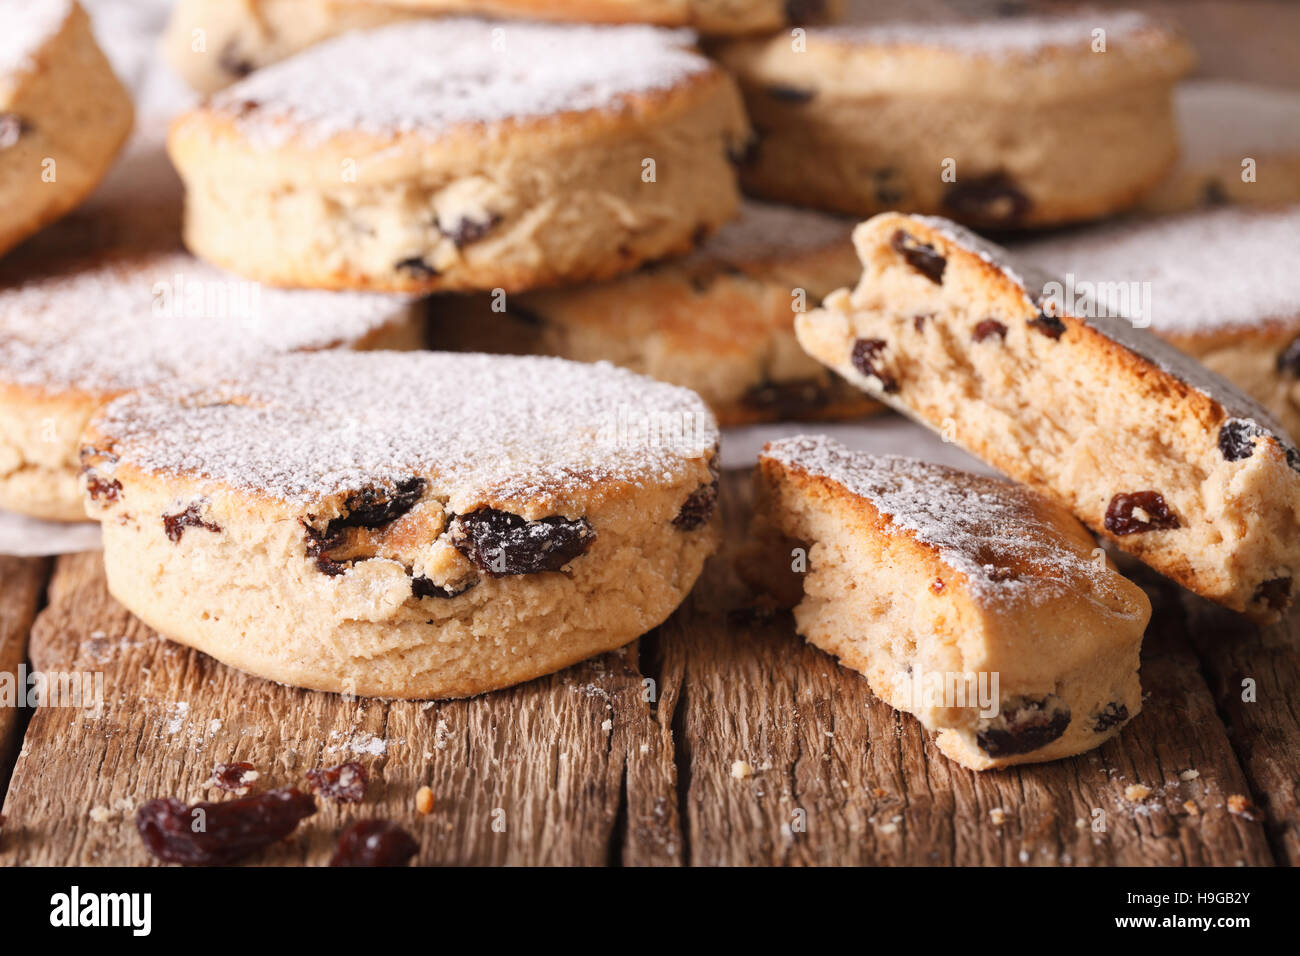 British biscuits: Welsh cakes with raisins and powdered sugar close-up on the table. horizontal - Stock Image